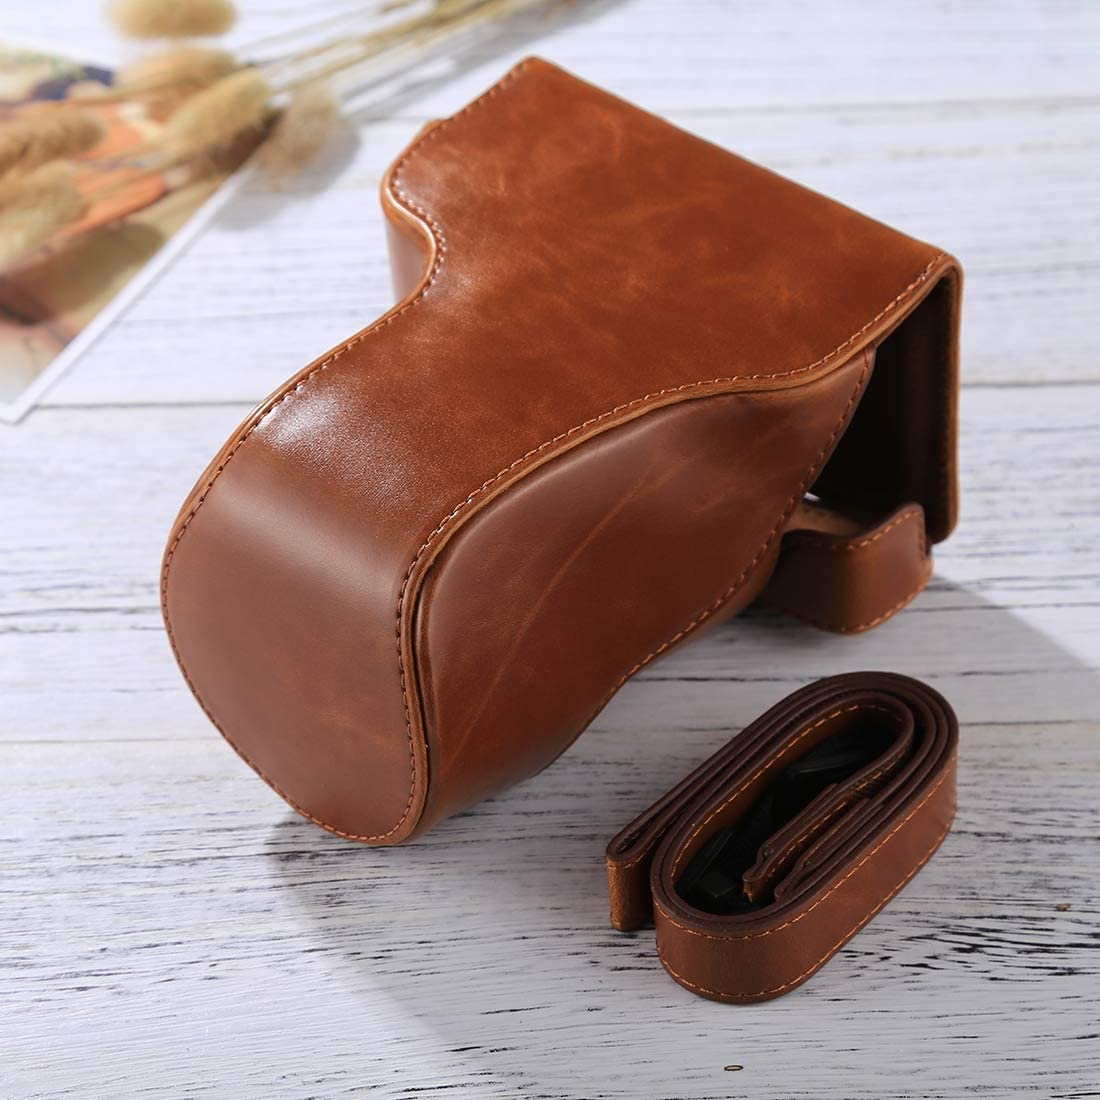 CAOMING Full Body Camera PU Leather Case Bag with Strap for Canon EOS M6 18-150mm Lens Color : Brown Durable